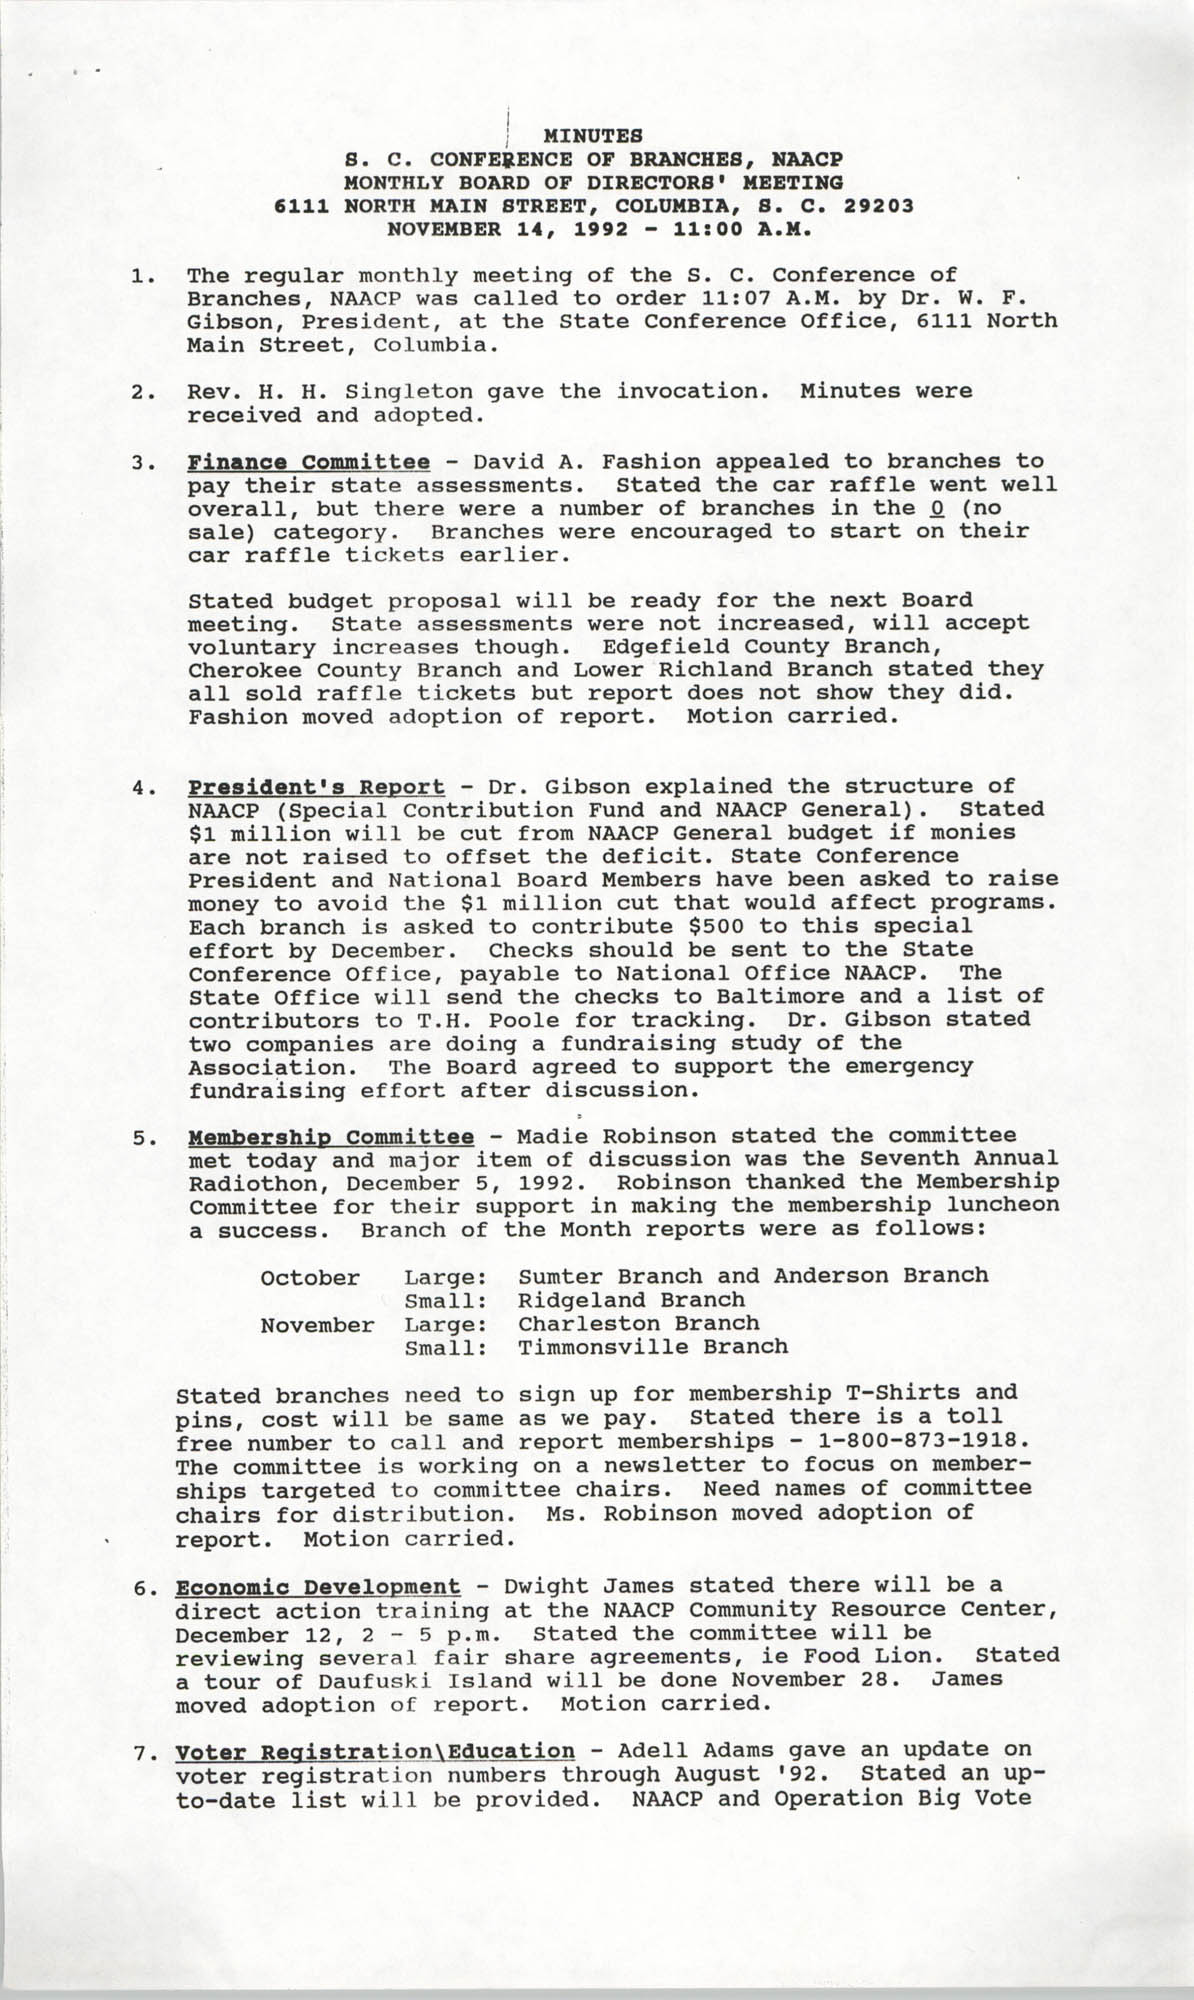 Minutes, South Carolina Conference of Branches of the NAACP, November 14, 1992